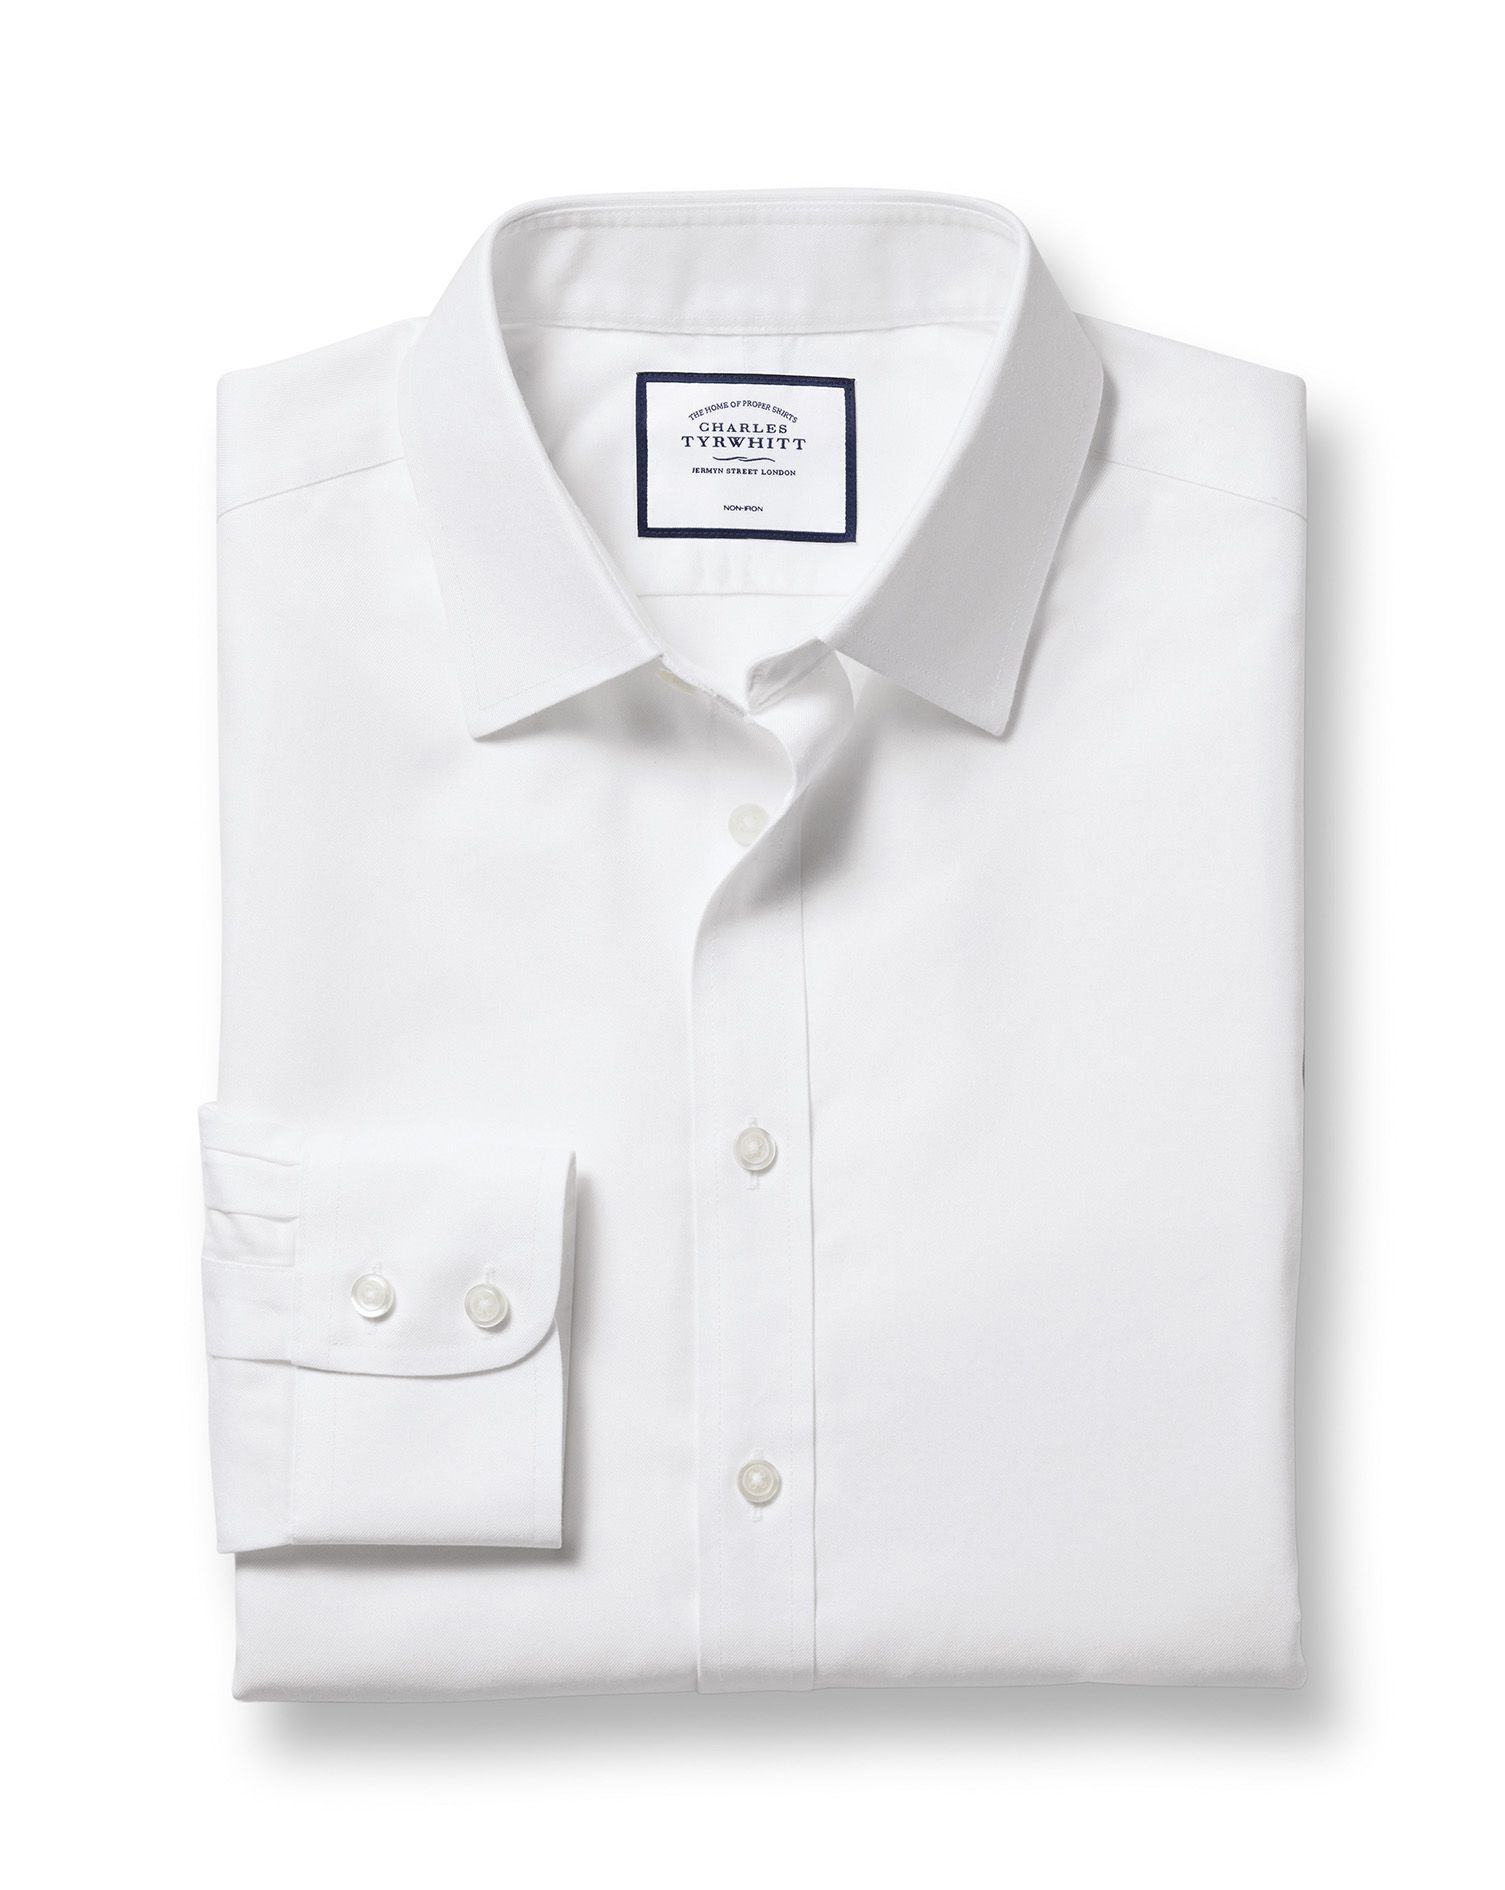 Extra Slim Fit White Non-Iron Twill Cotton Formal Shirt Single Cuff Size 15.5/32 by Charles Tyrwhitt